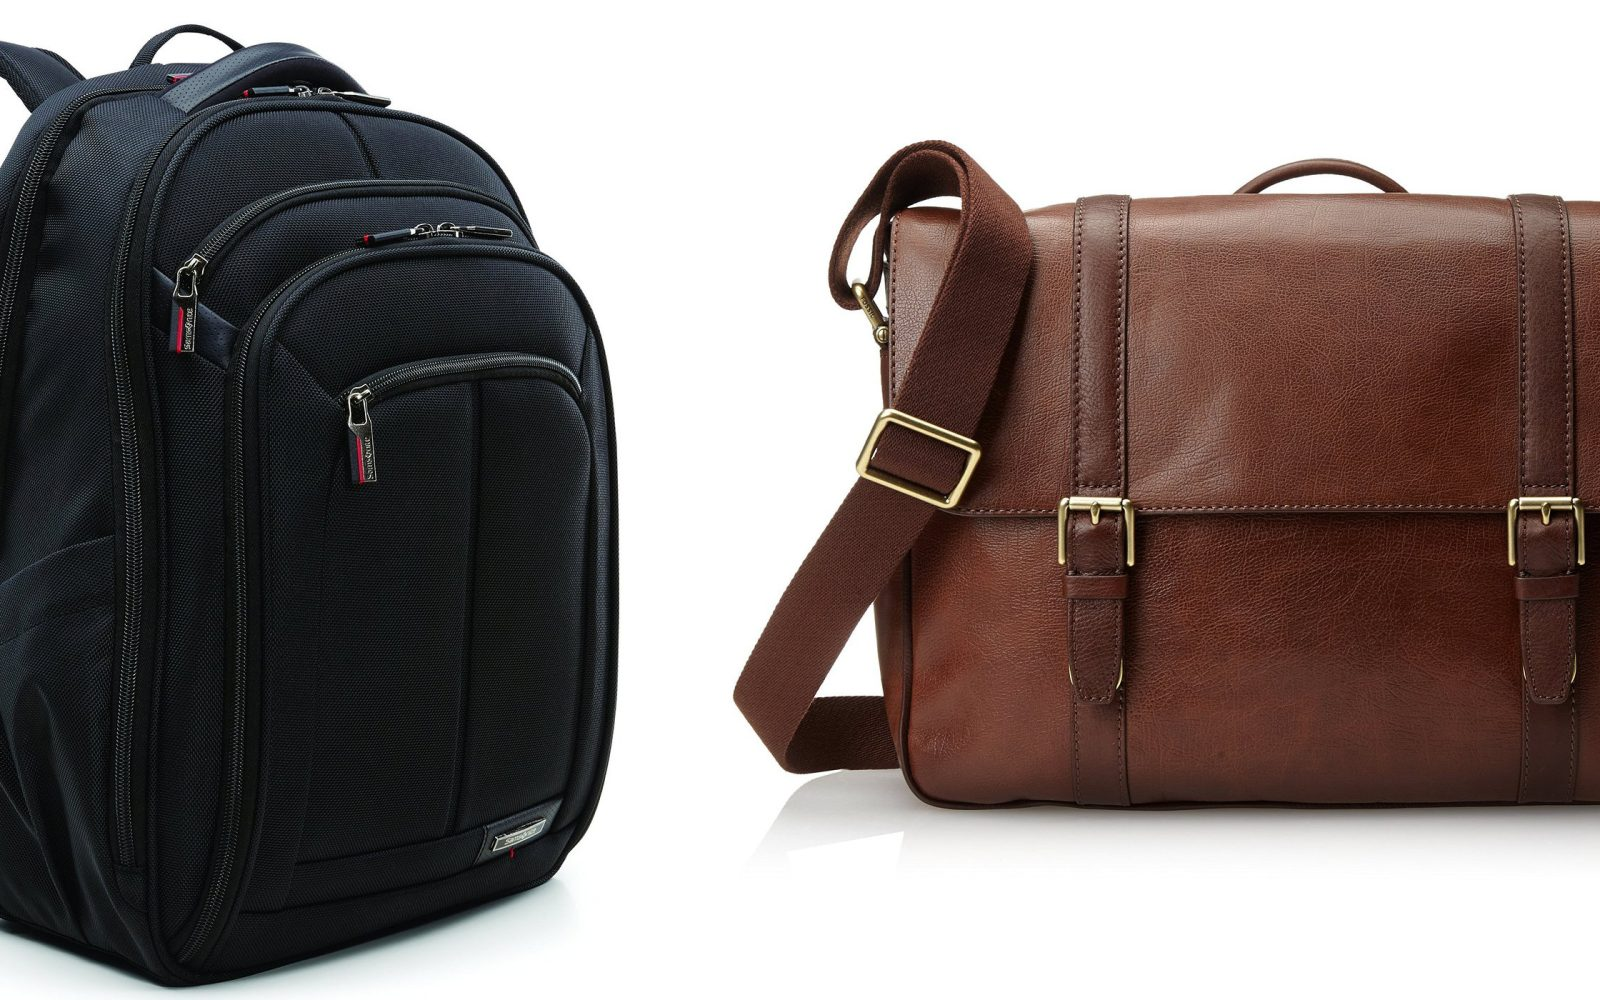 Amazon offers up to 70% off luggage sets and leather messenger bags with  deals starting from  20 Prime shipped 408a357d5f39e